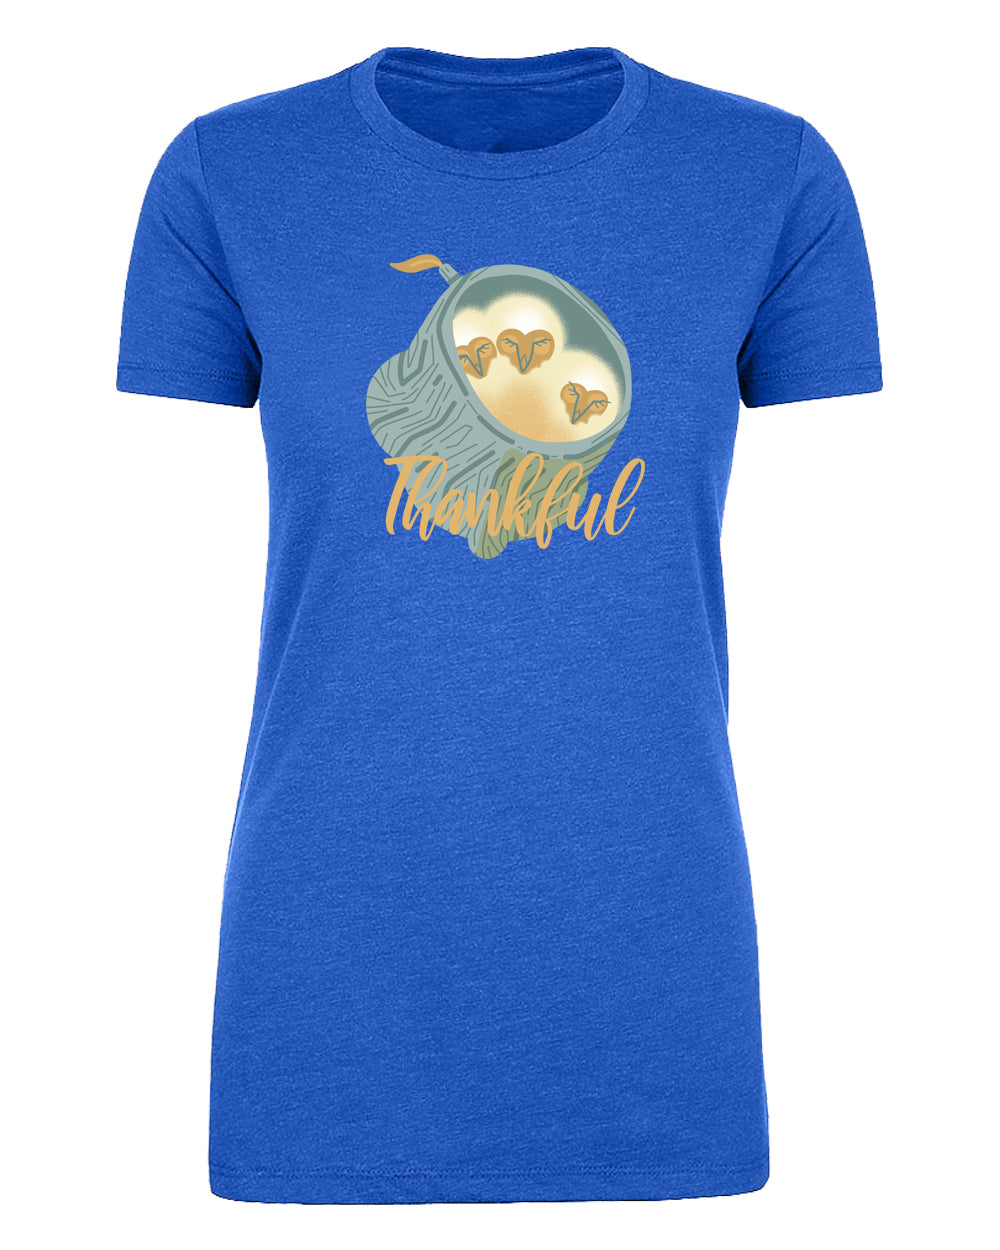 Shirt - Thankful Baby Owls Funny Thanksgiving Women's Shirts